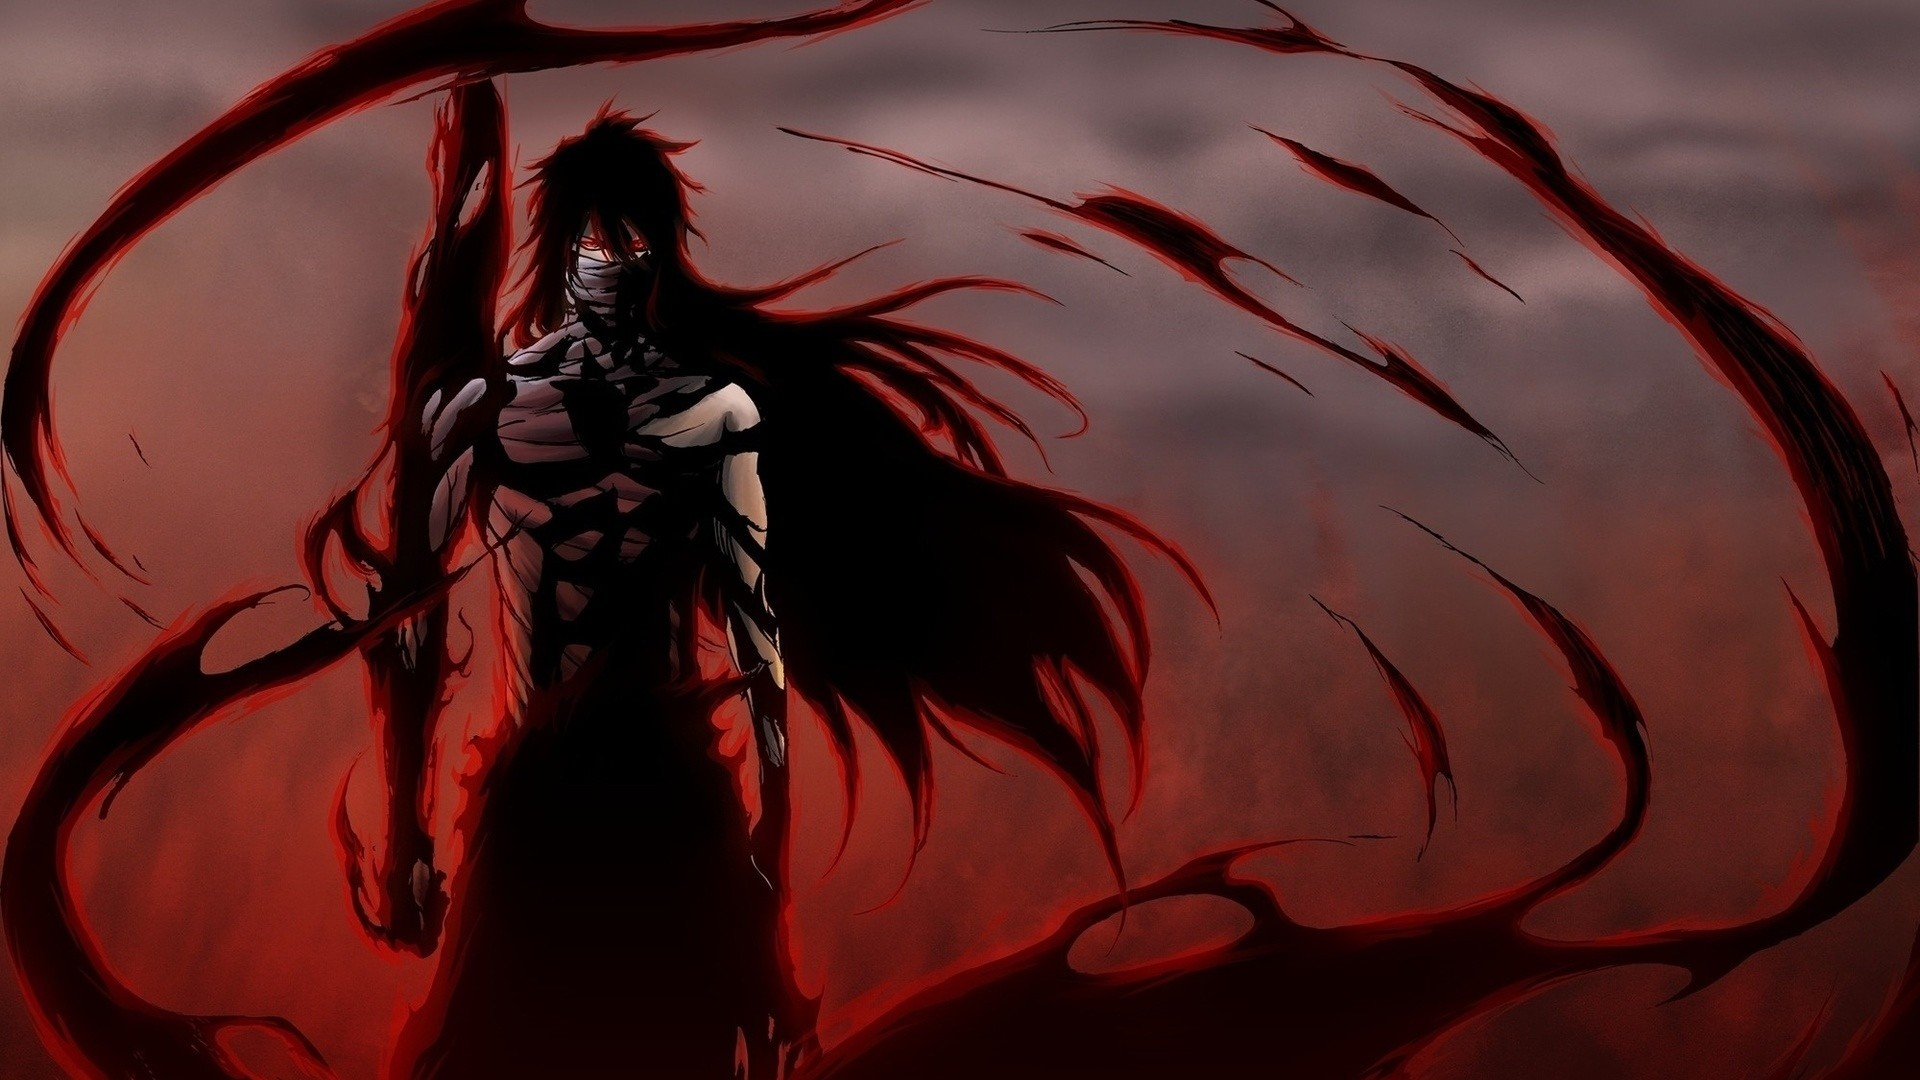 1920x1080 Awesome Anime Wallpaper 1080p